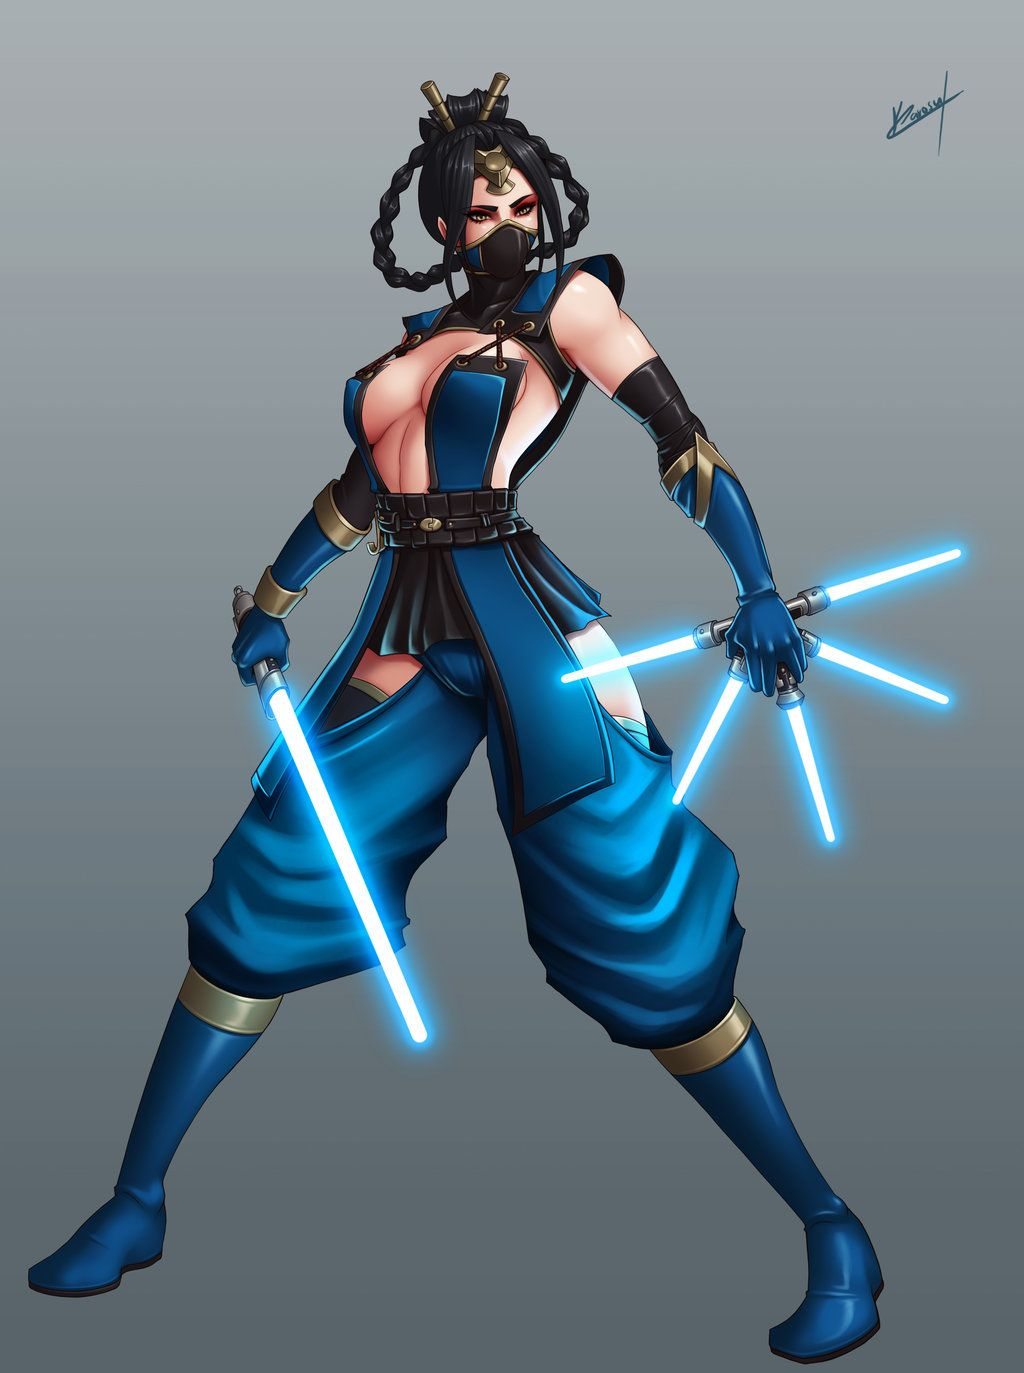 Kitana-MKX on SubZero-and-Kitana - DeviantArt | design board